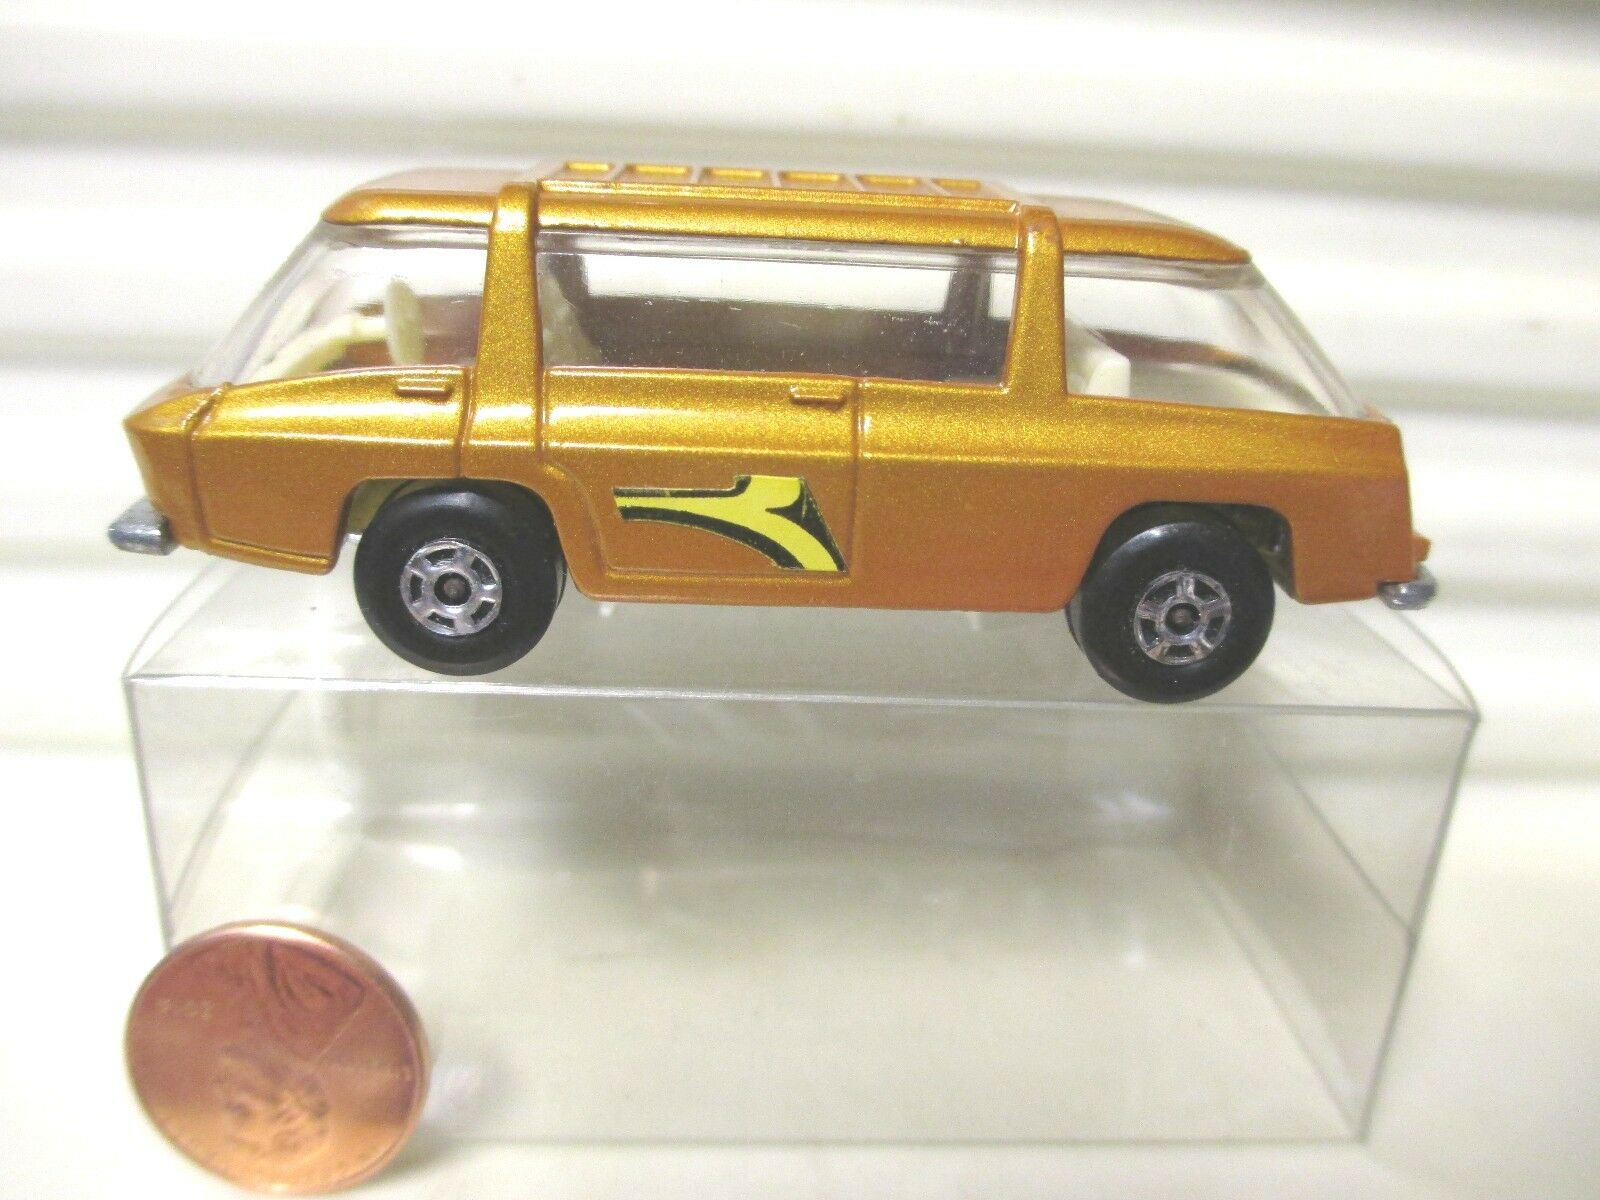 LESNEY MATCHBOX MB22B Lite or Freeman Commuter wlbls Unpaintd base Comme neuf pvcbox